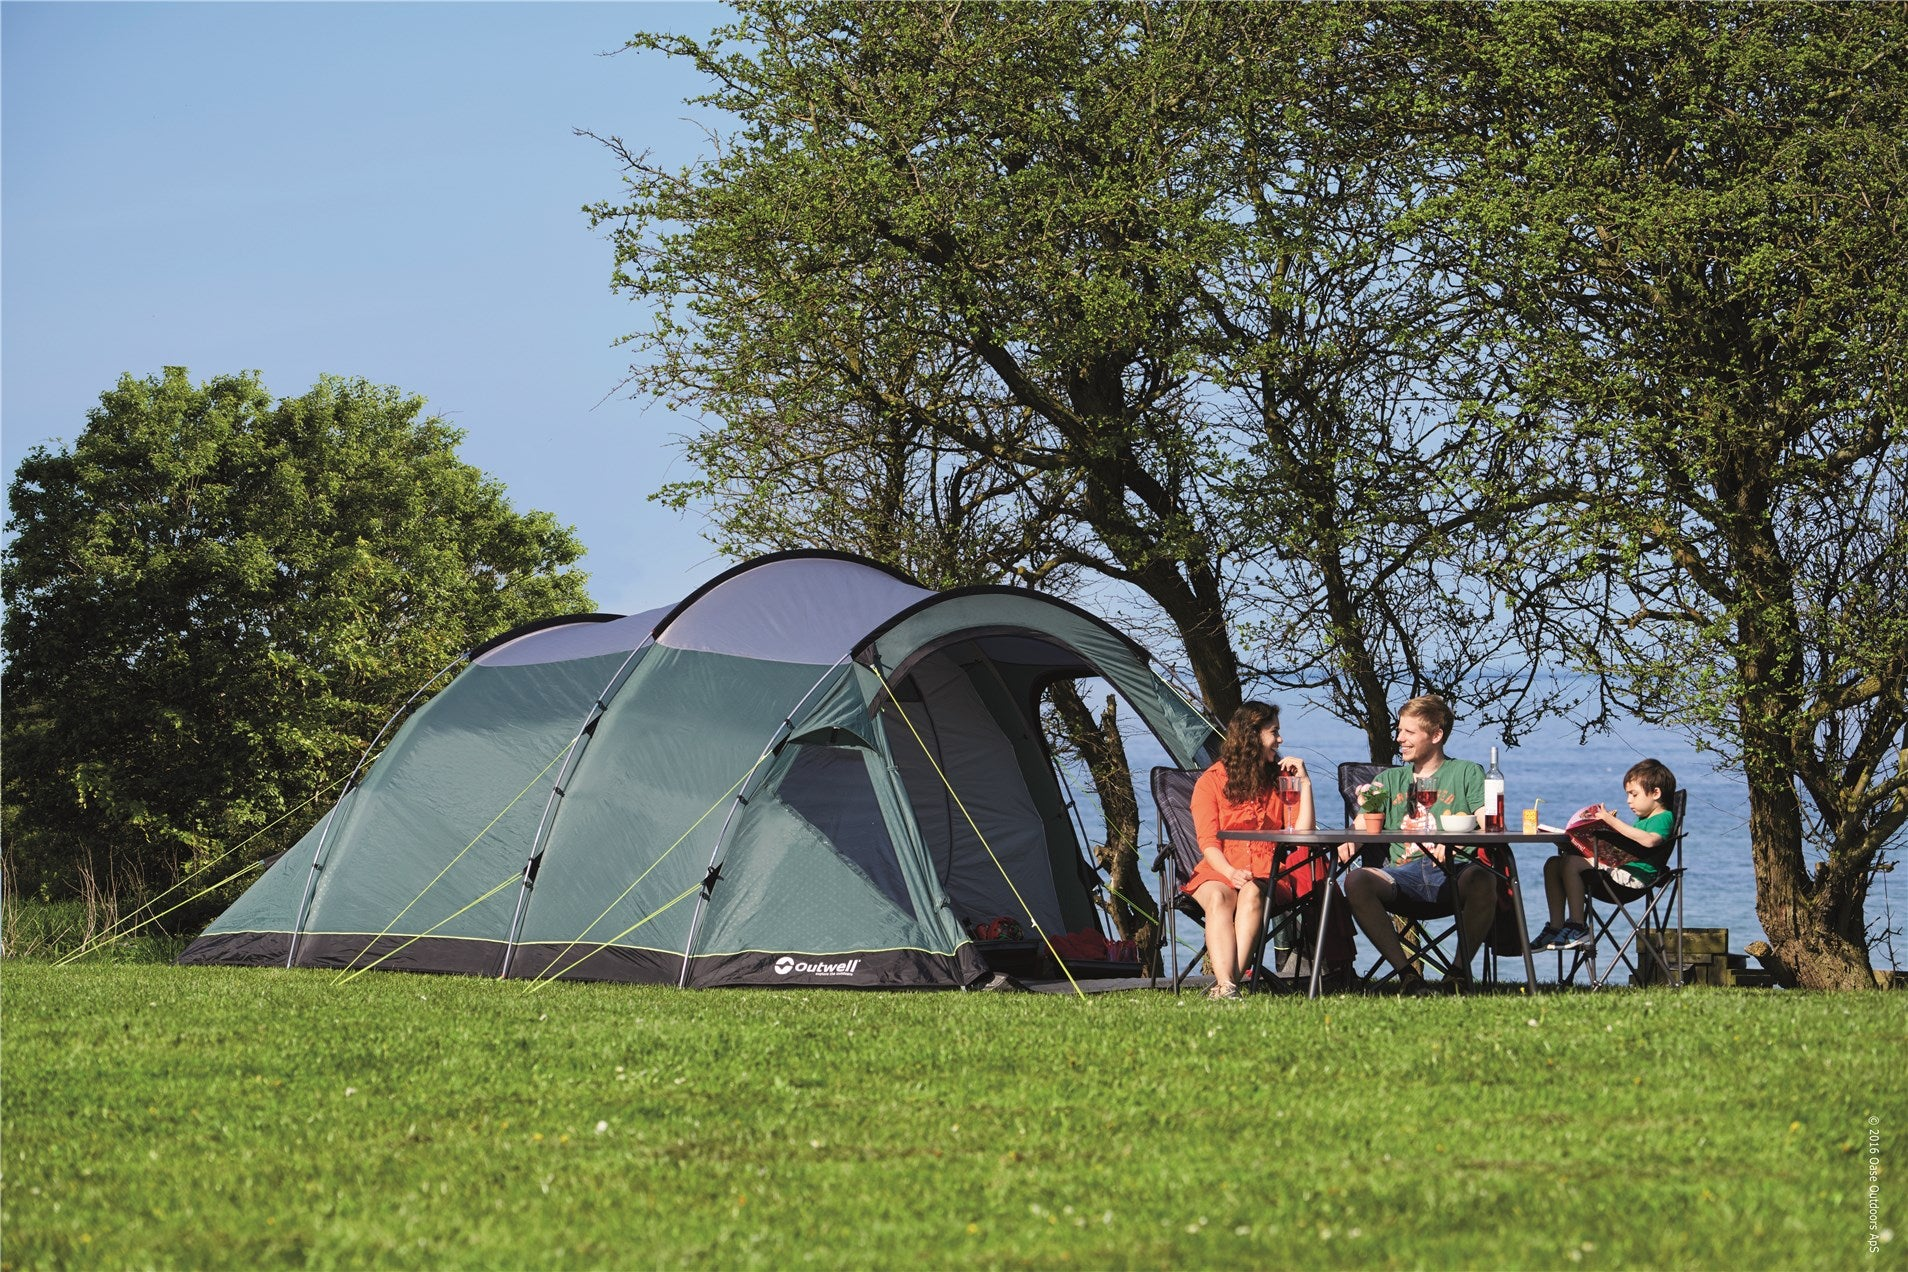 Pitch Up & Newquay Camping | Tents | Sleeping Bags | Flag Poles | Drive Away ...